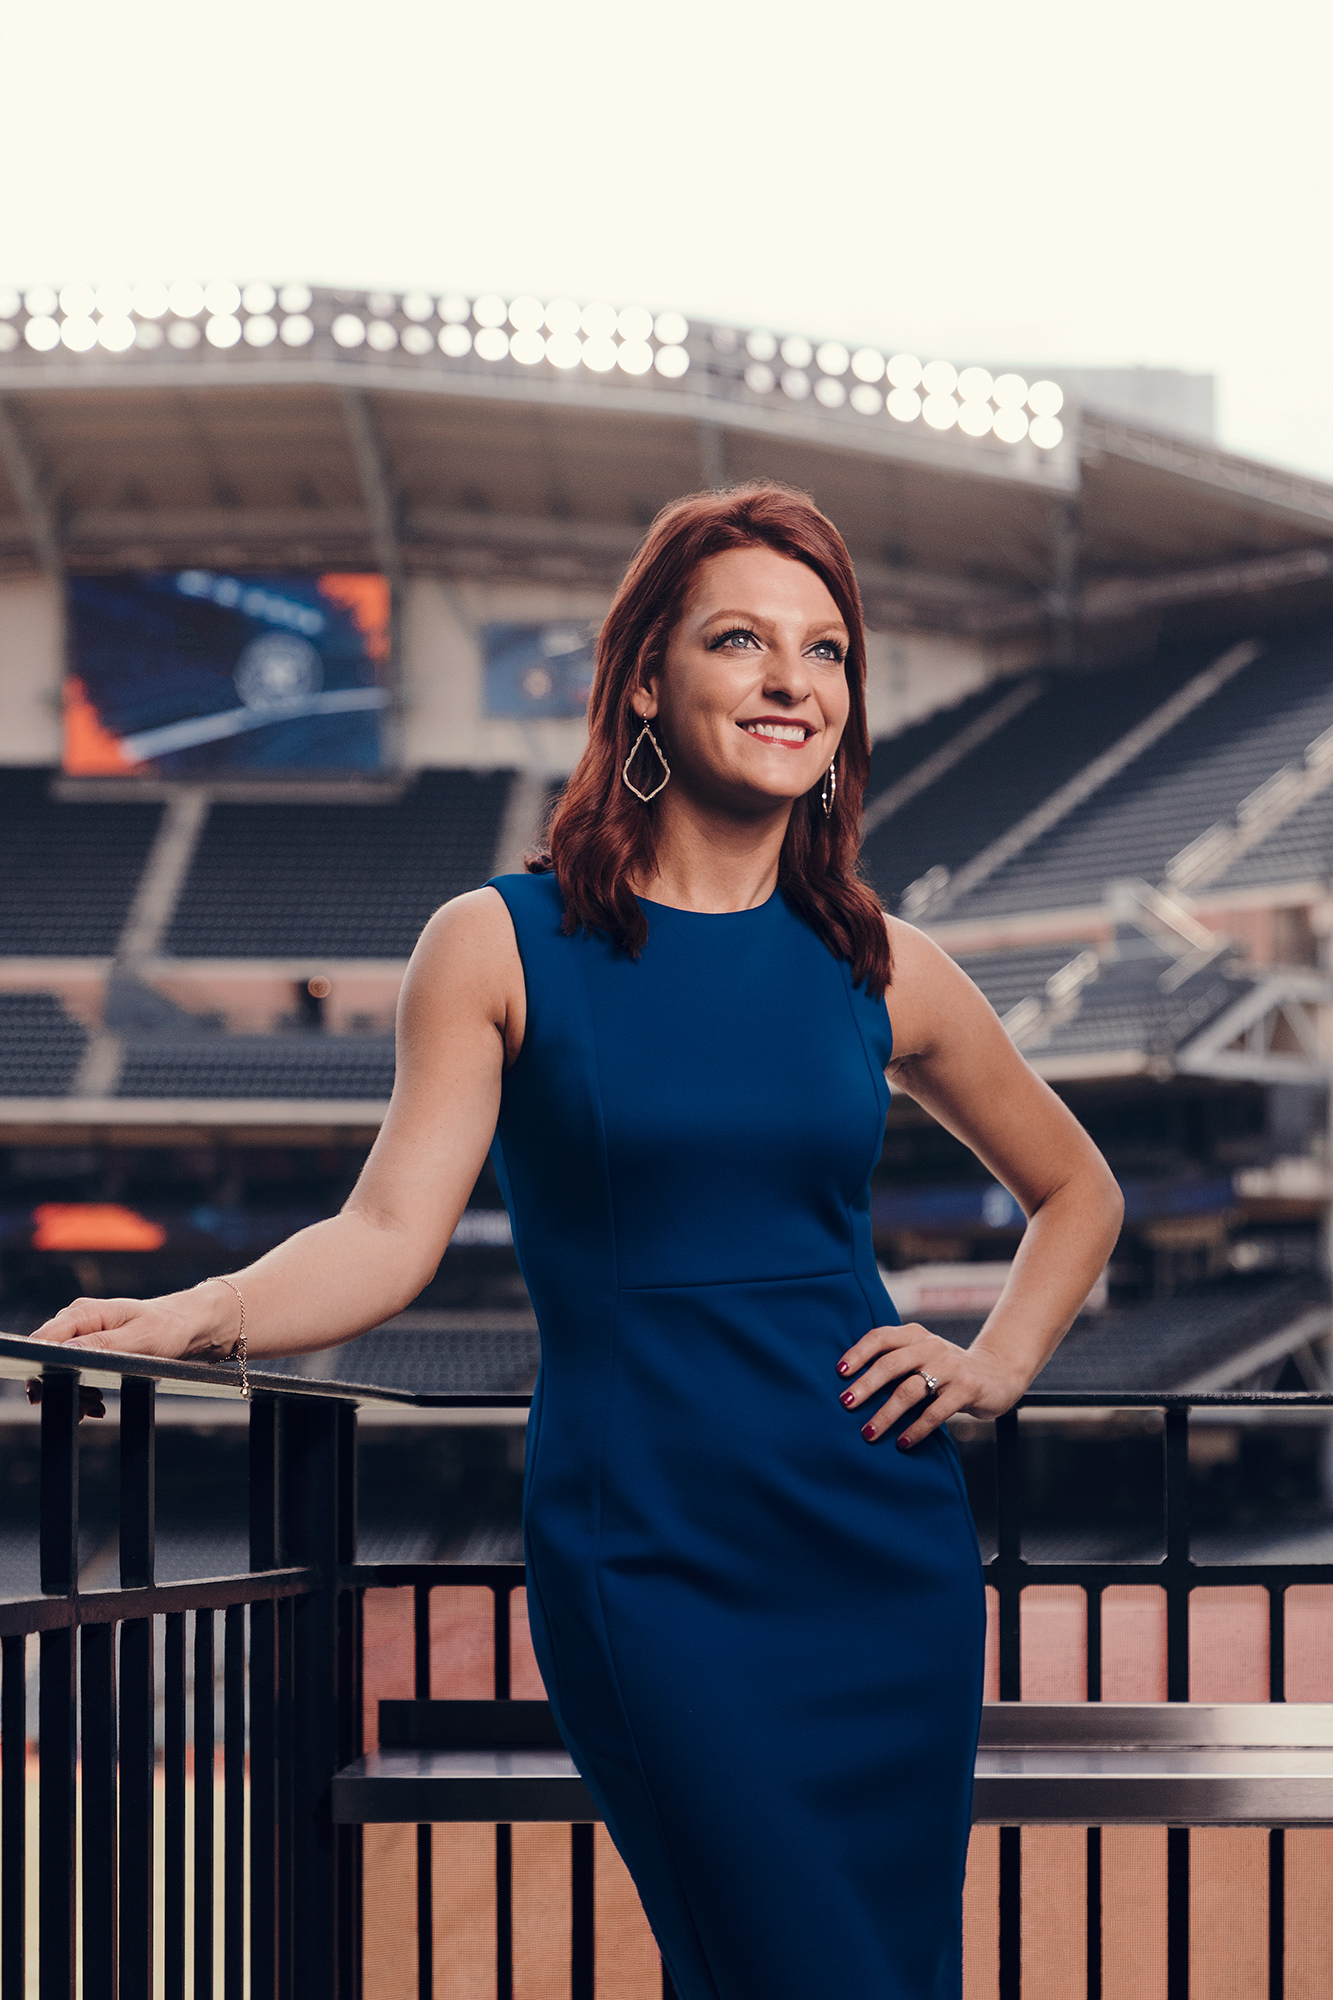 Julia Morales, Houston Astros on-field reporter, photographed on-location at Minute Maid Park in Houston, Texas by Houston sports photographer, Todd Spoth.